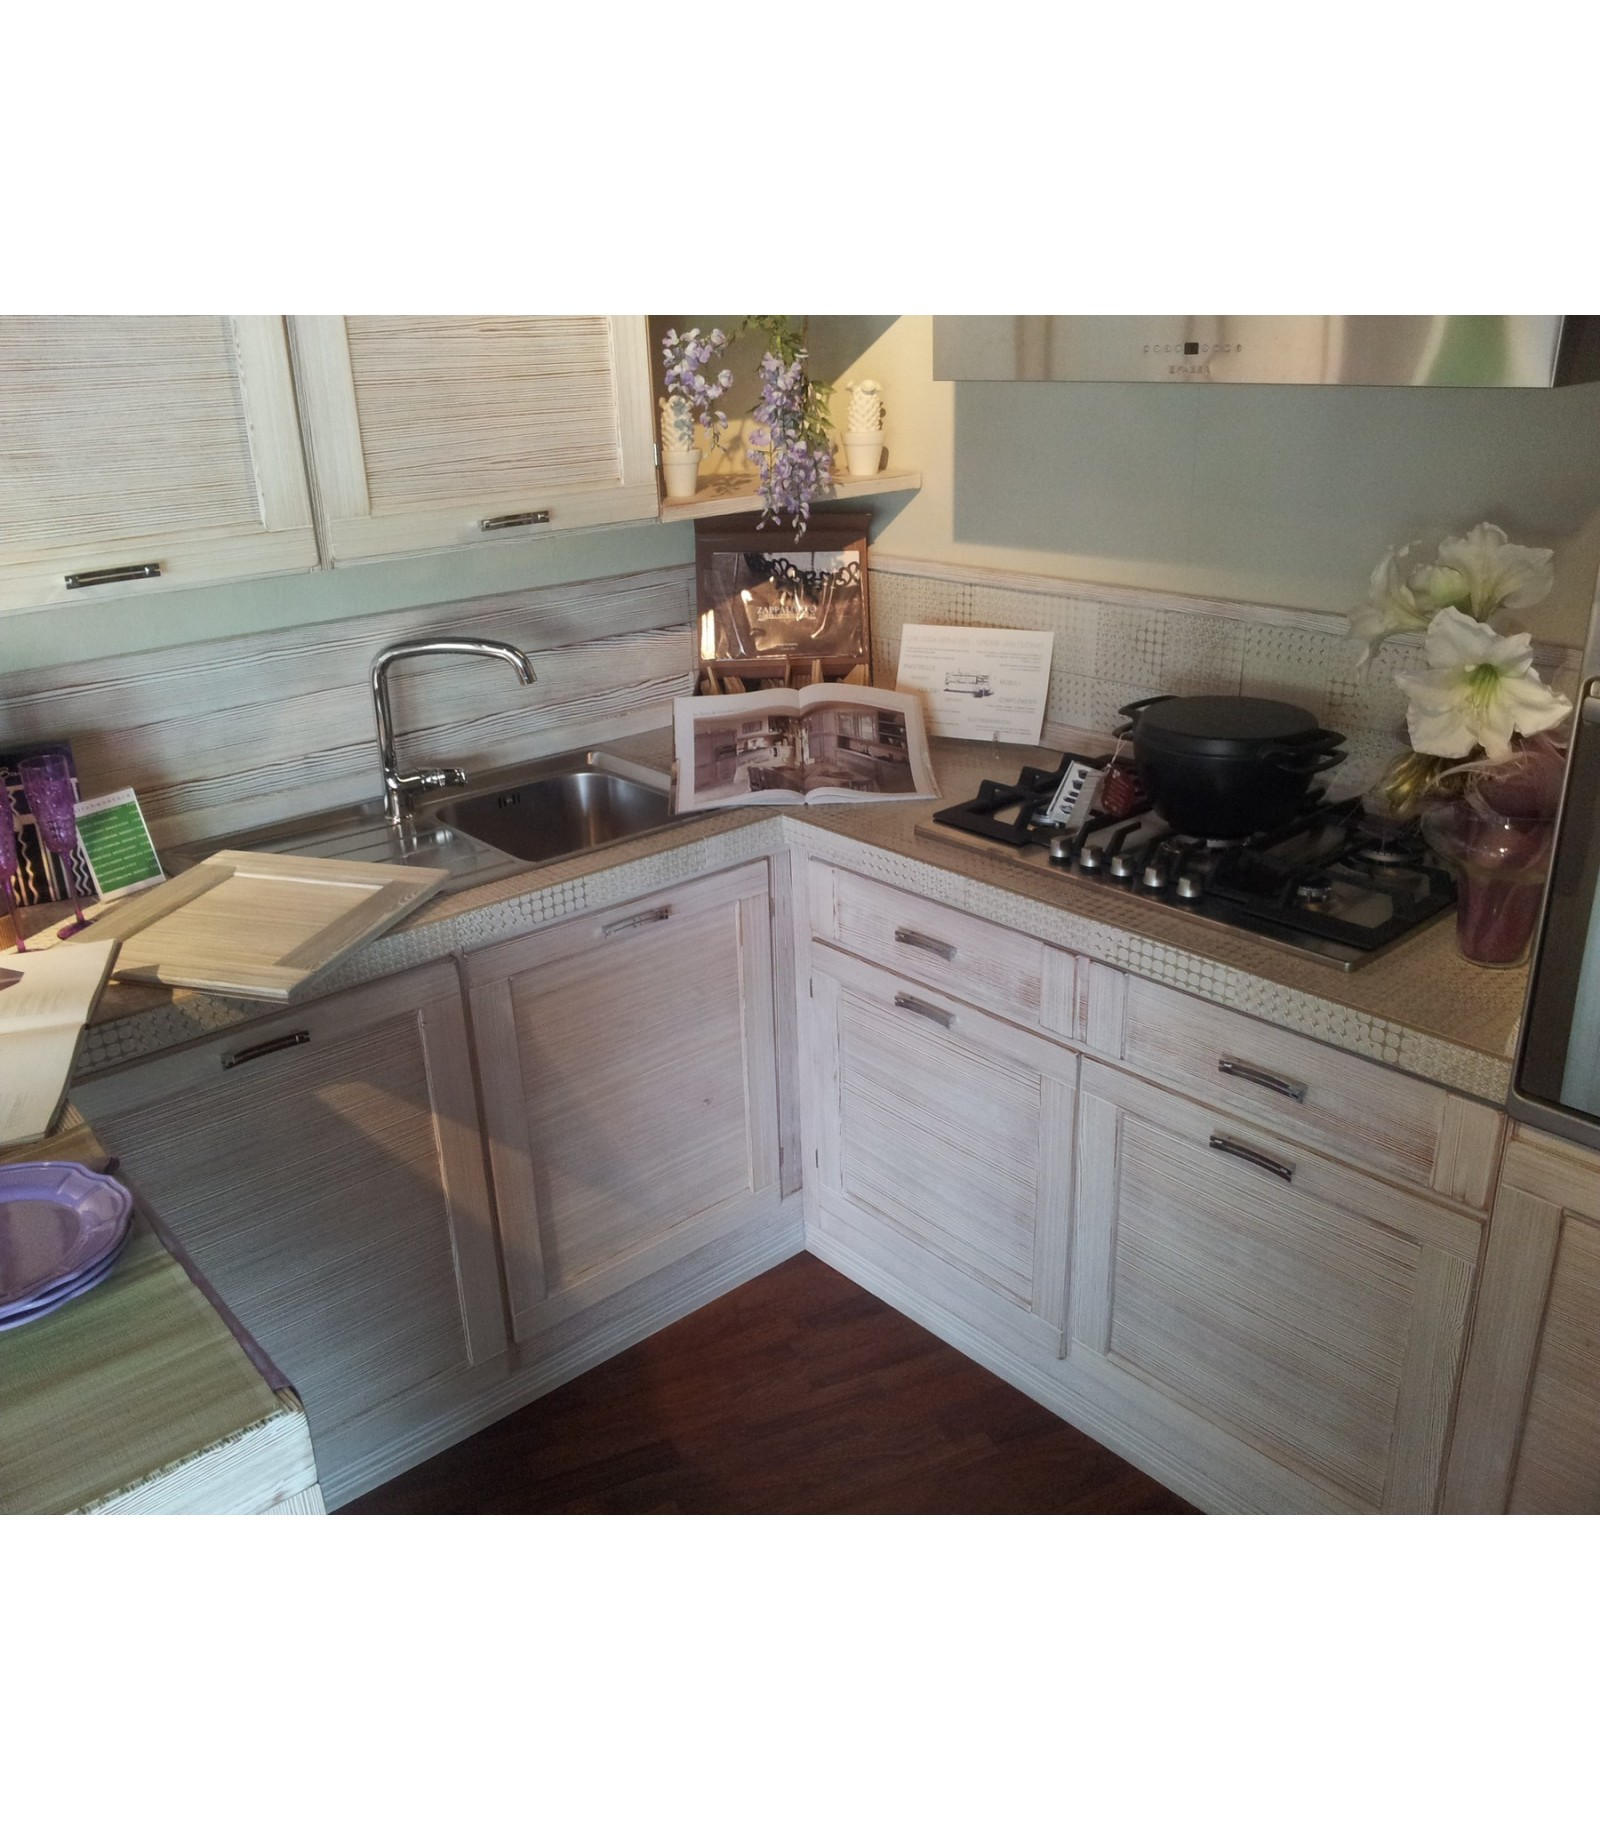 Cucine Outlet In Toscana | Outlet Cucine Toscana. Cucina With Outlet ...